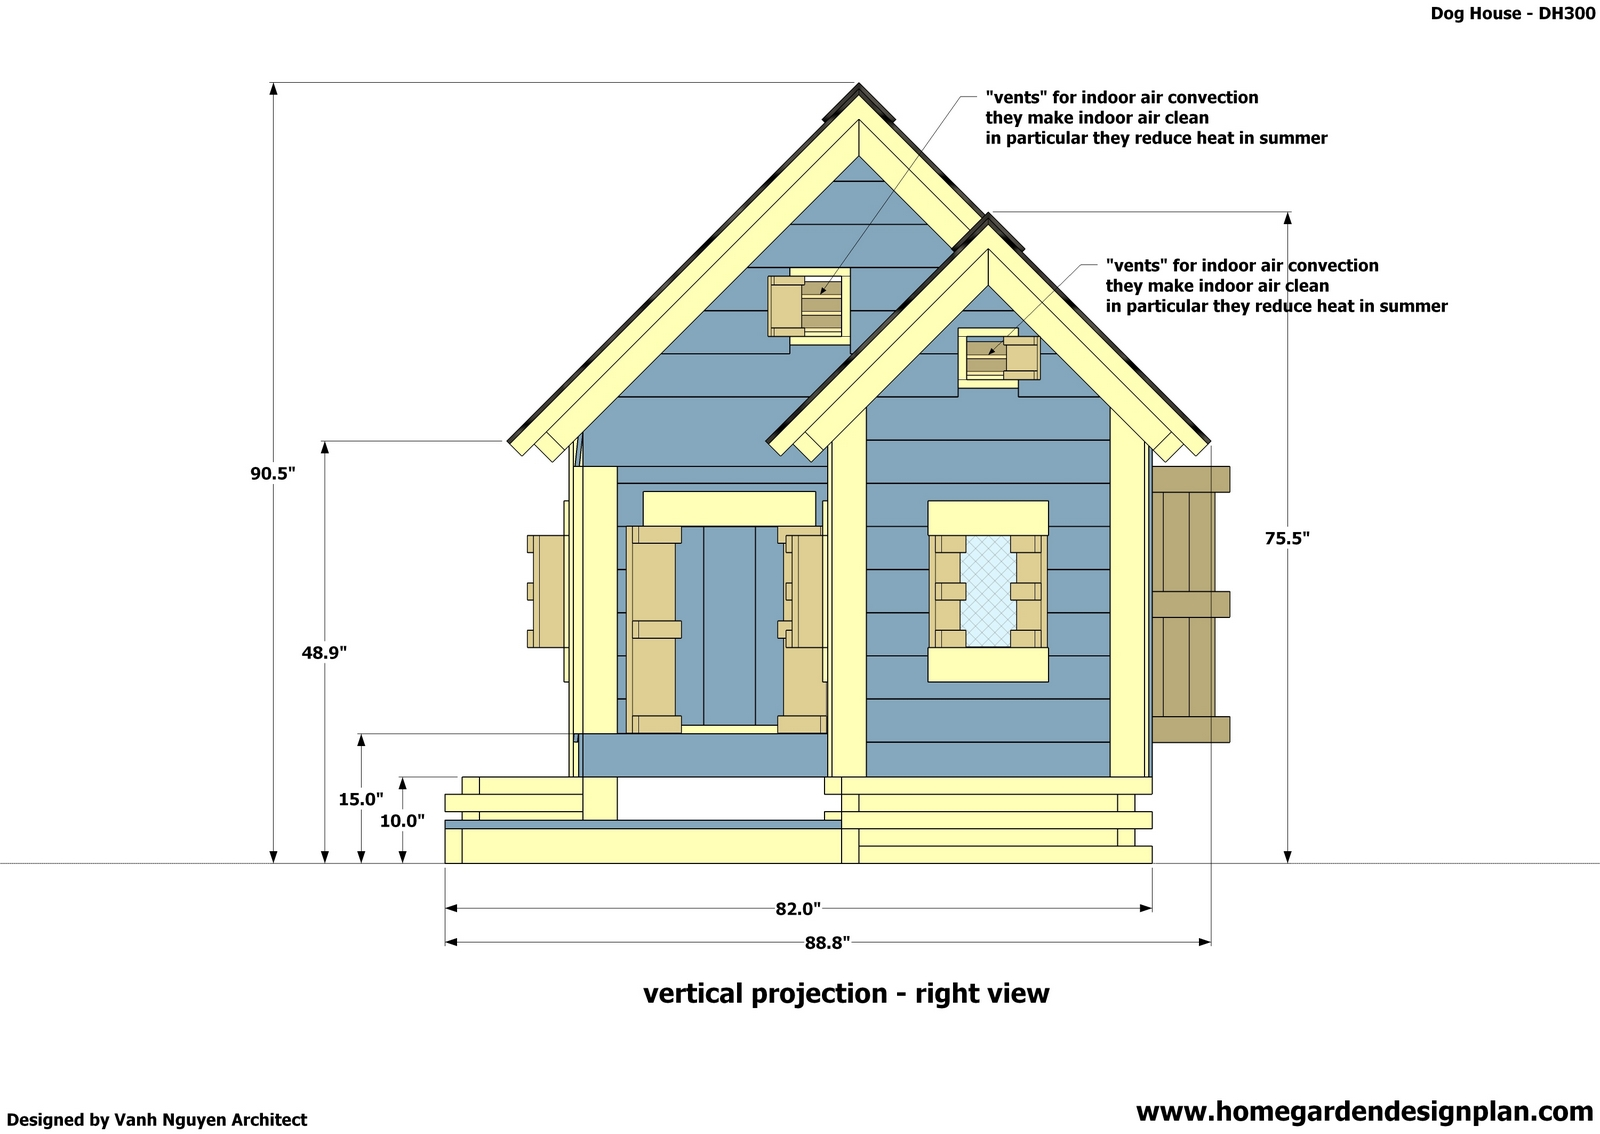 Insulated dog house plans for large dogs free - photo#23